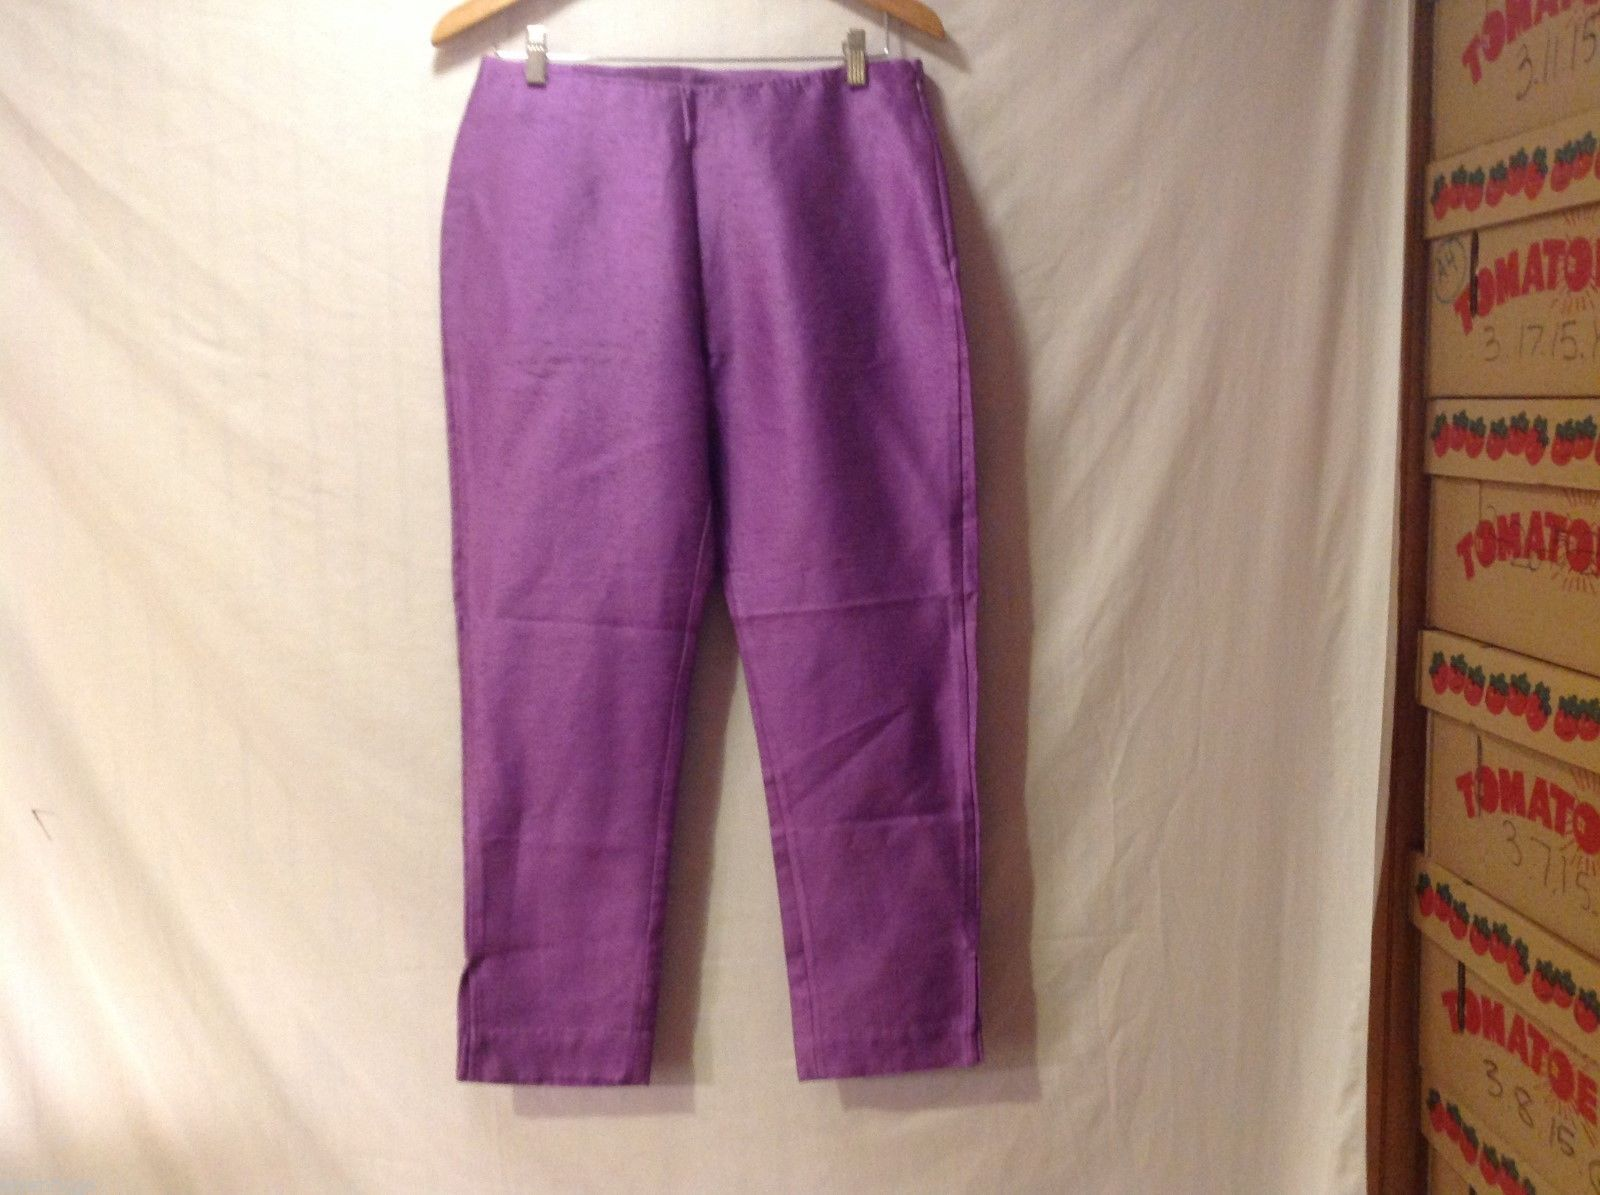 Womens Purple Shimmery Pants, Size unkown, see measurments